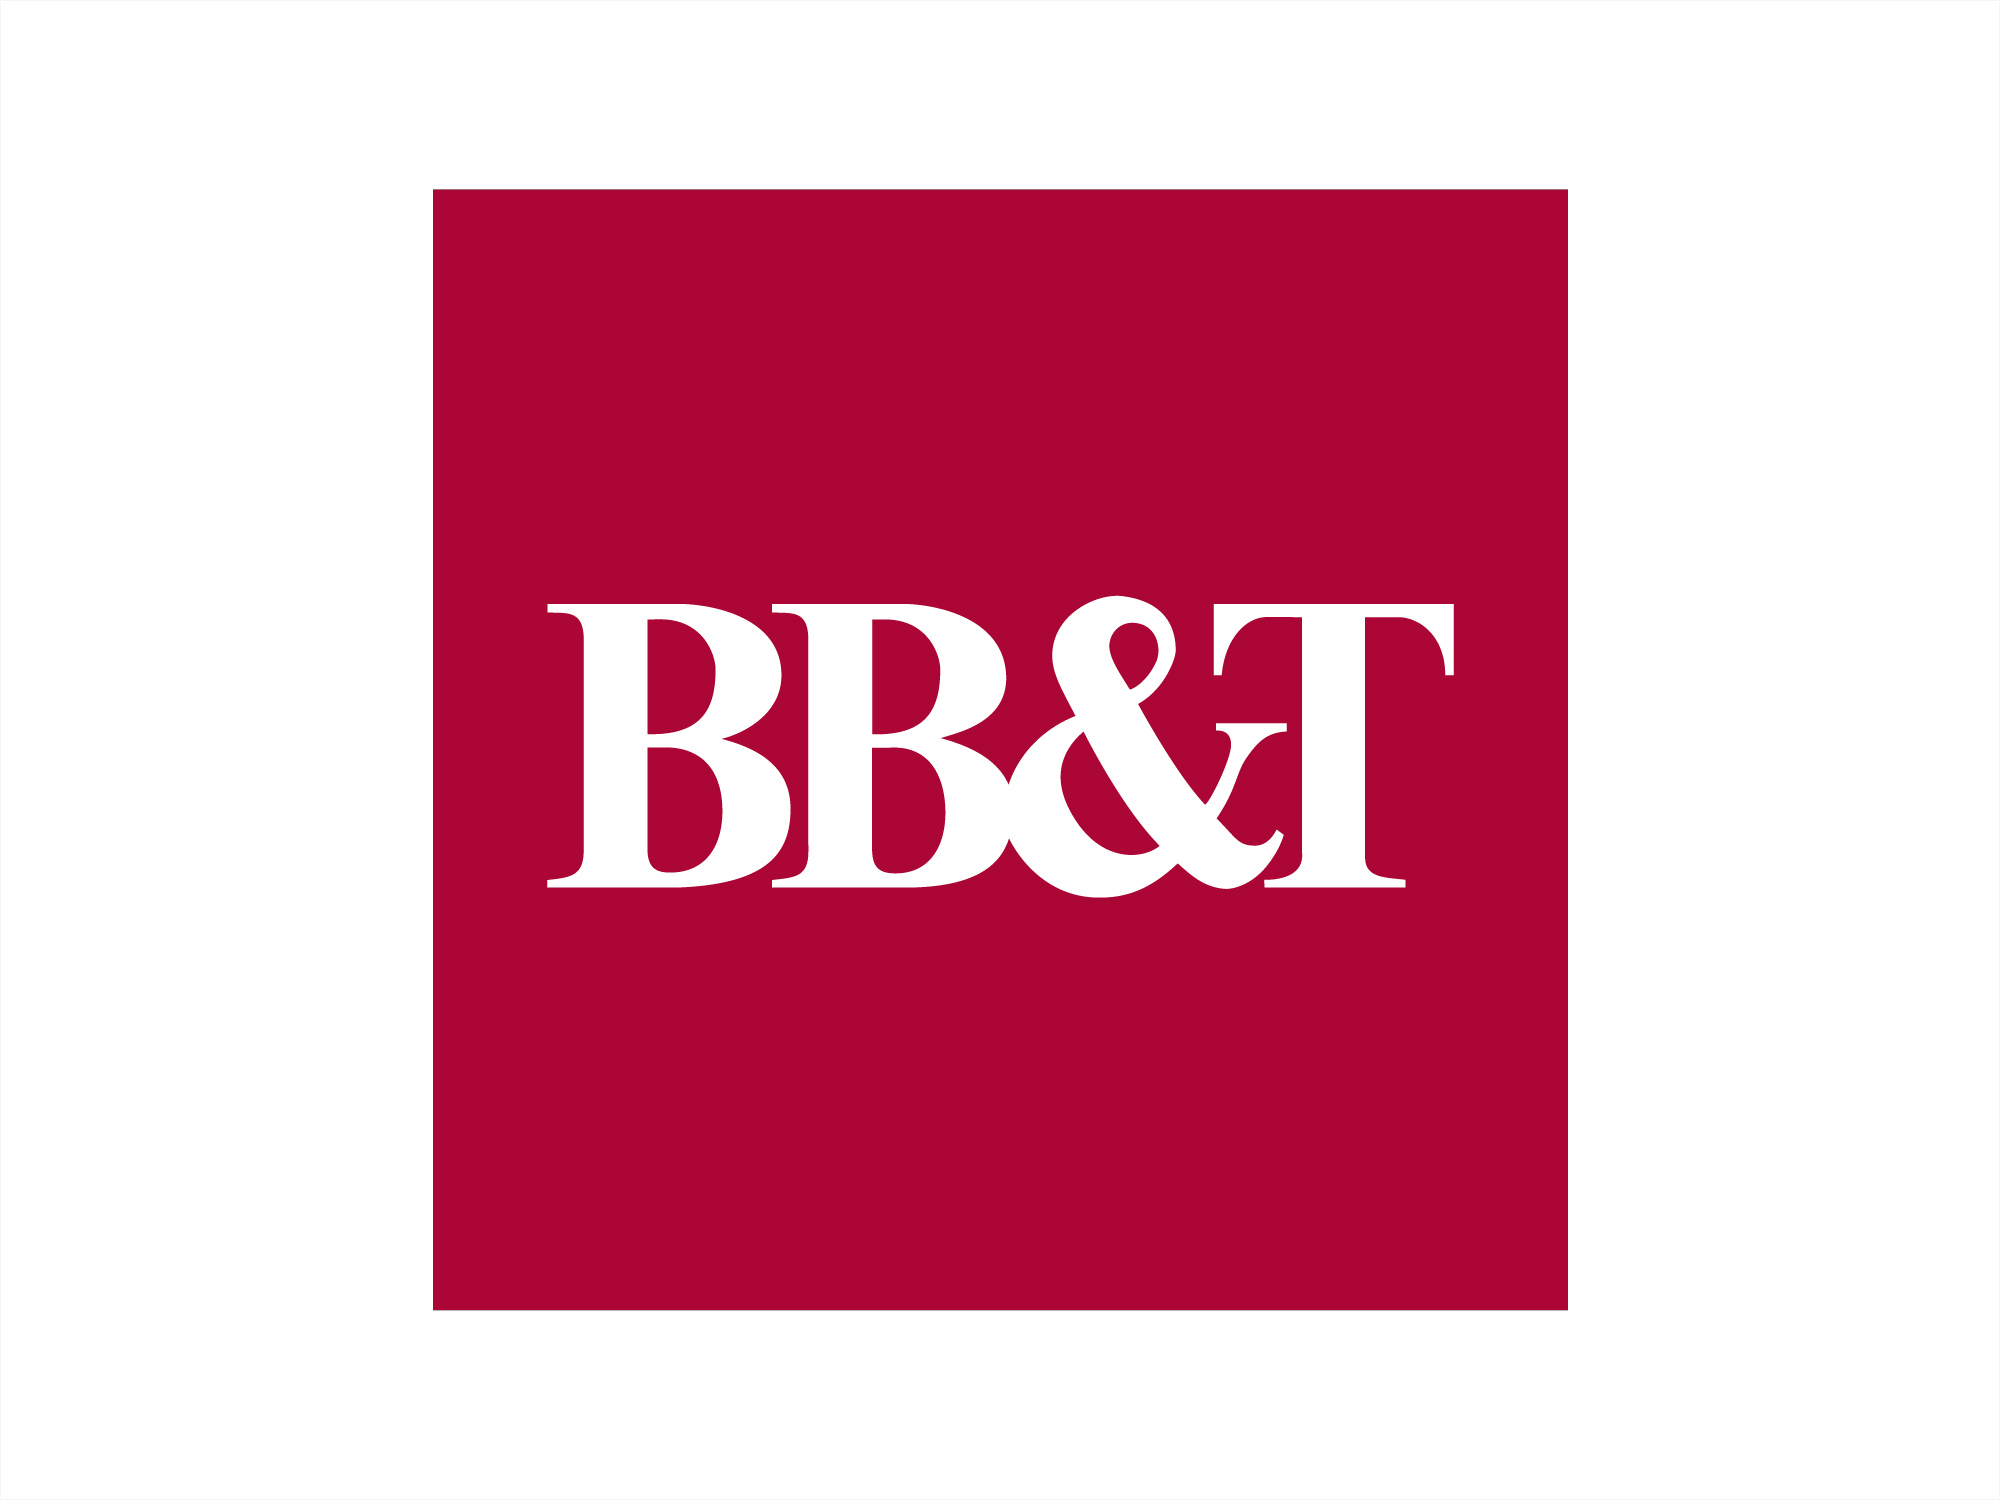 Some BB&T banking services unavailable